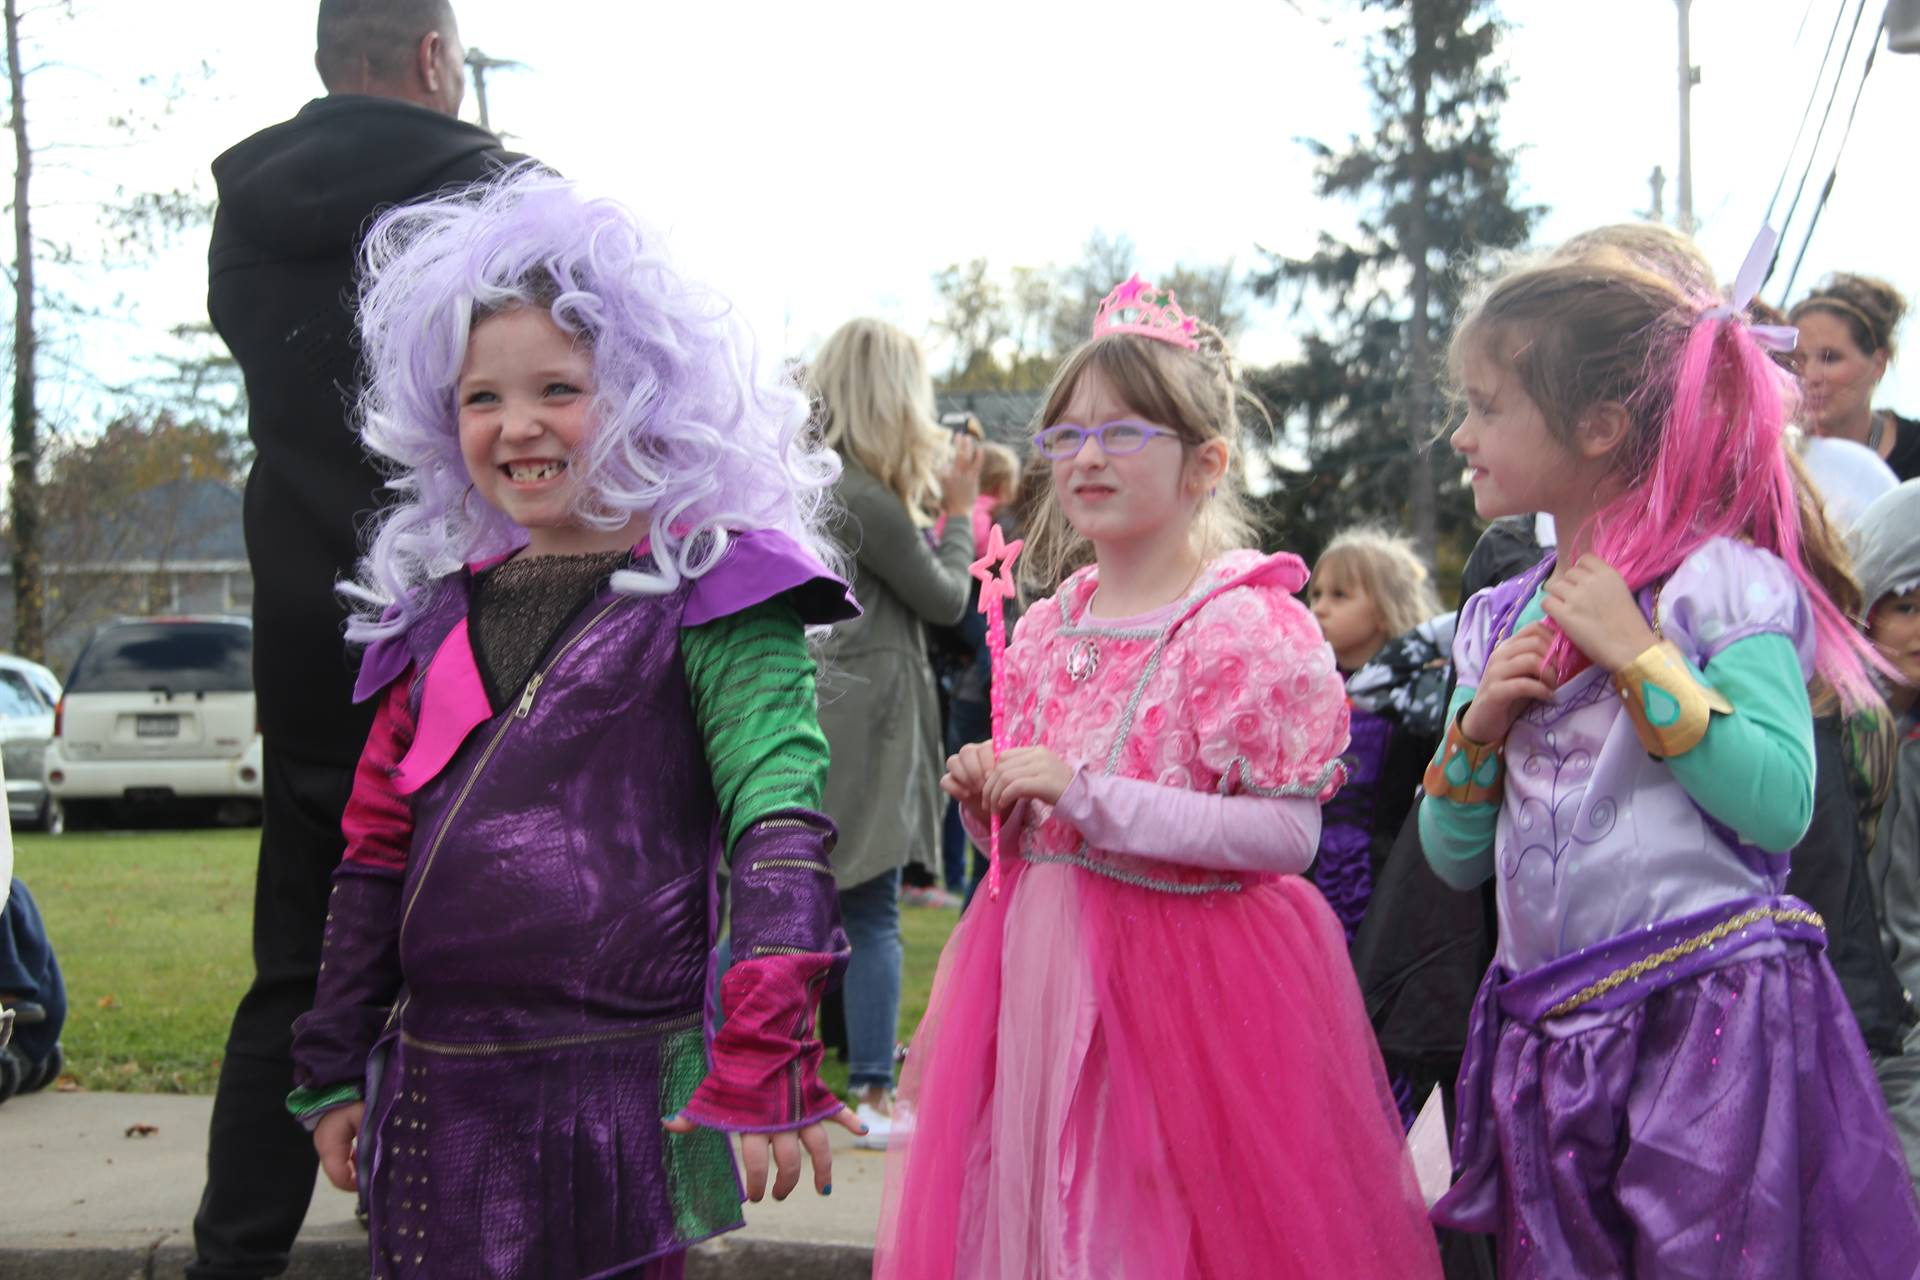 girls dressed as princesses